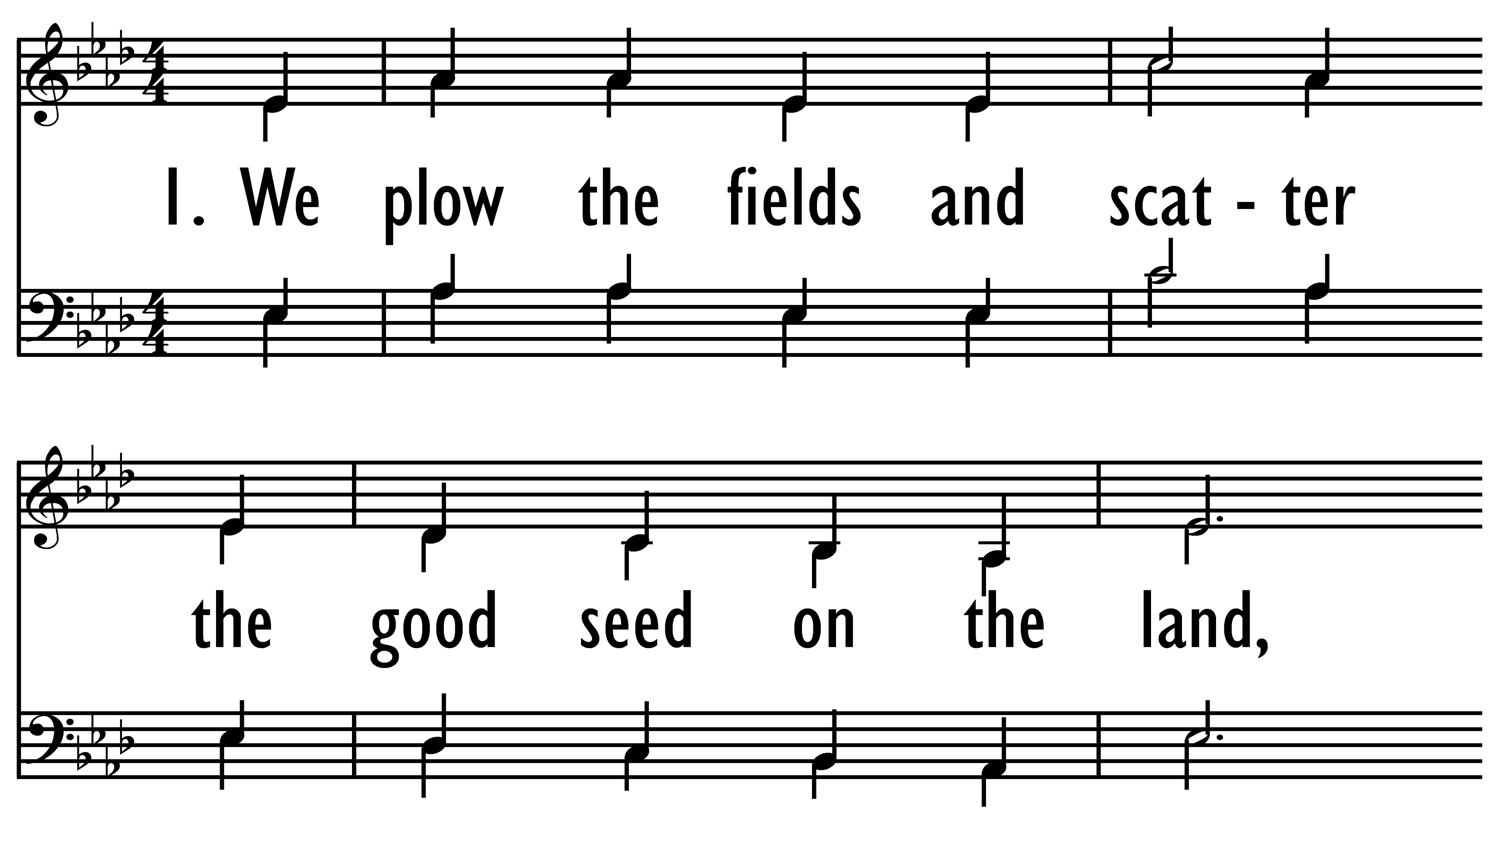 WE PLOW THE FIELDS-ppt